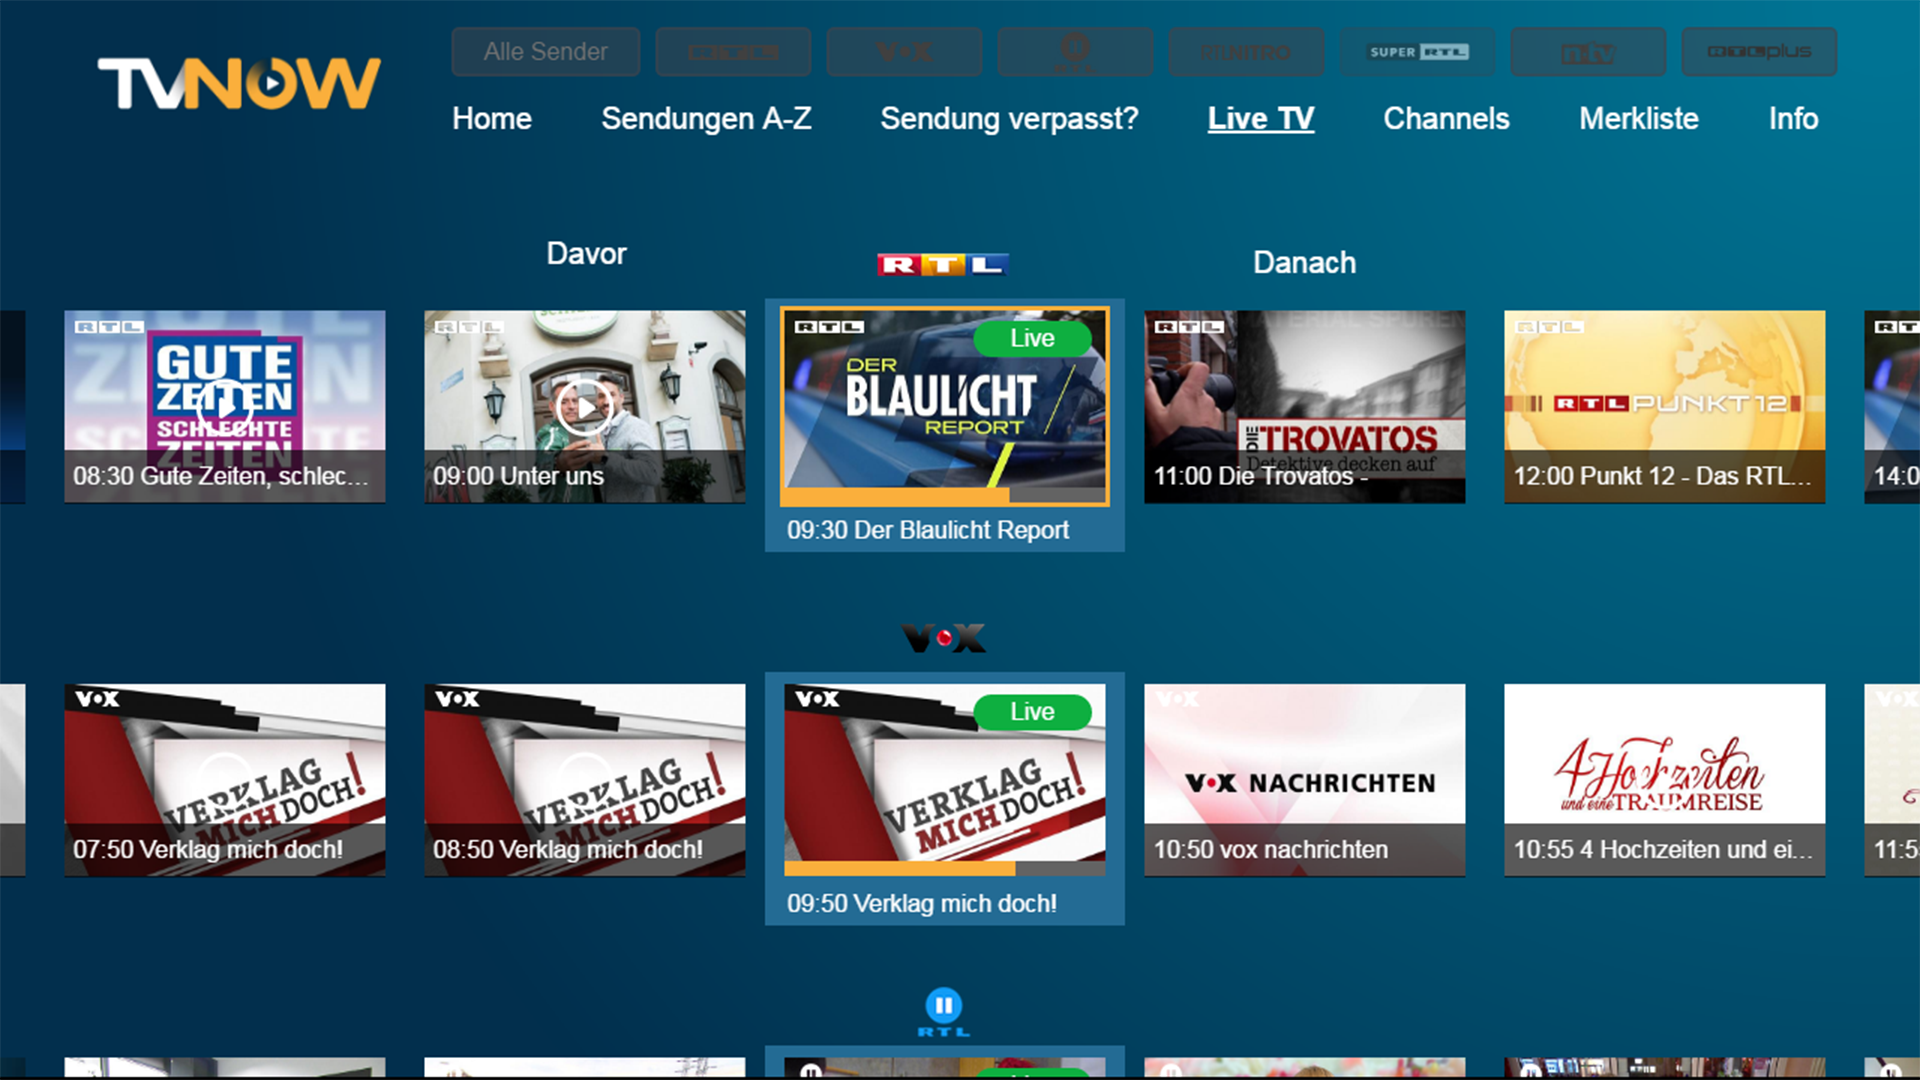 Tv now rtl mediathek ab sofort f r fire tv verf gbar for Spiegel tv rtl mediathek